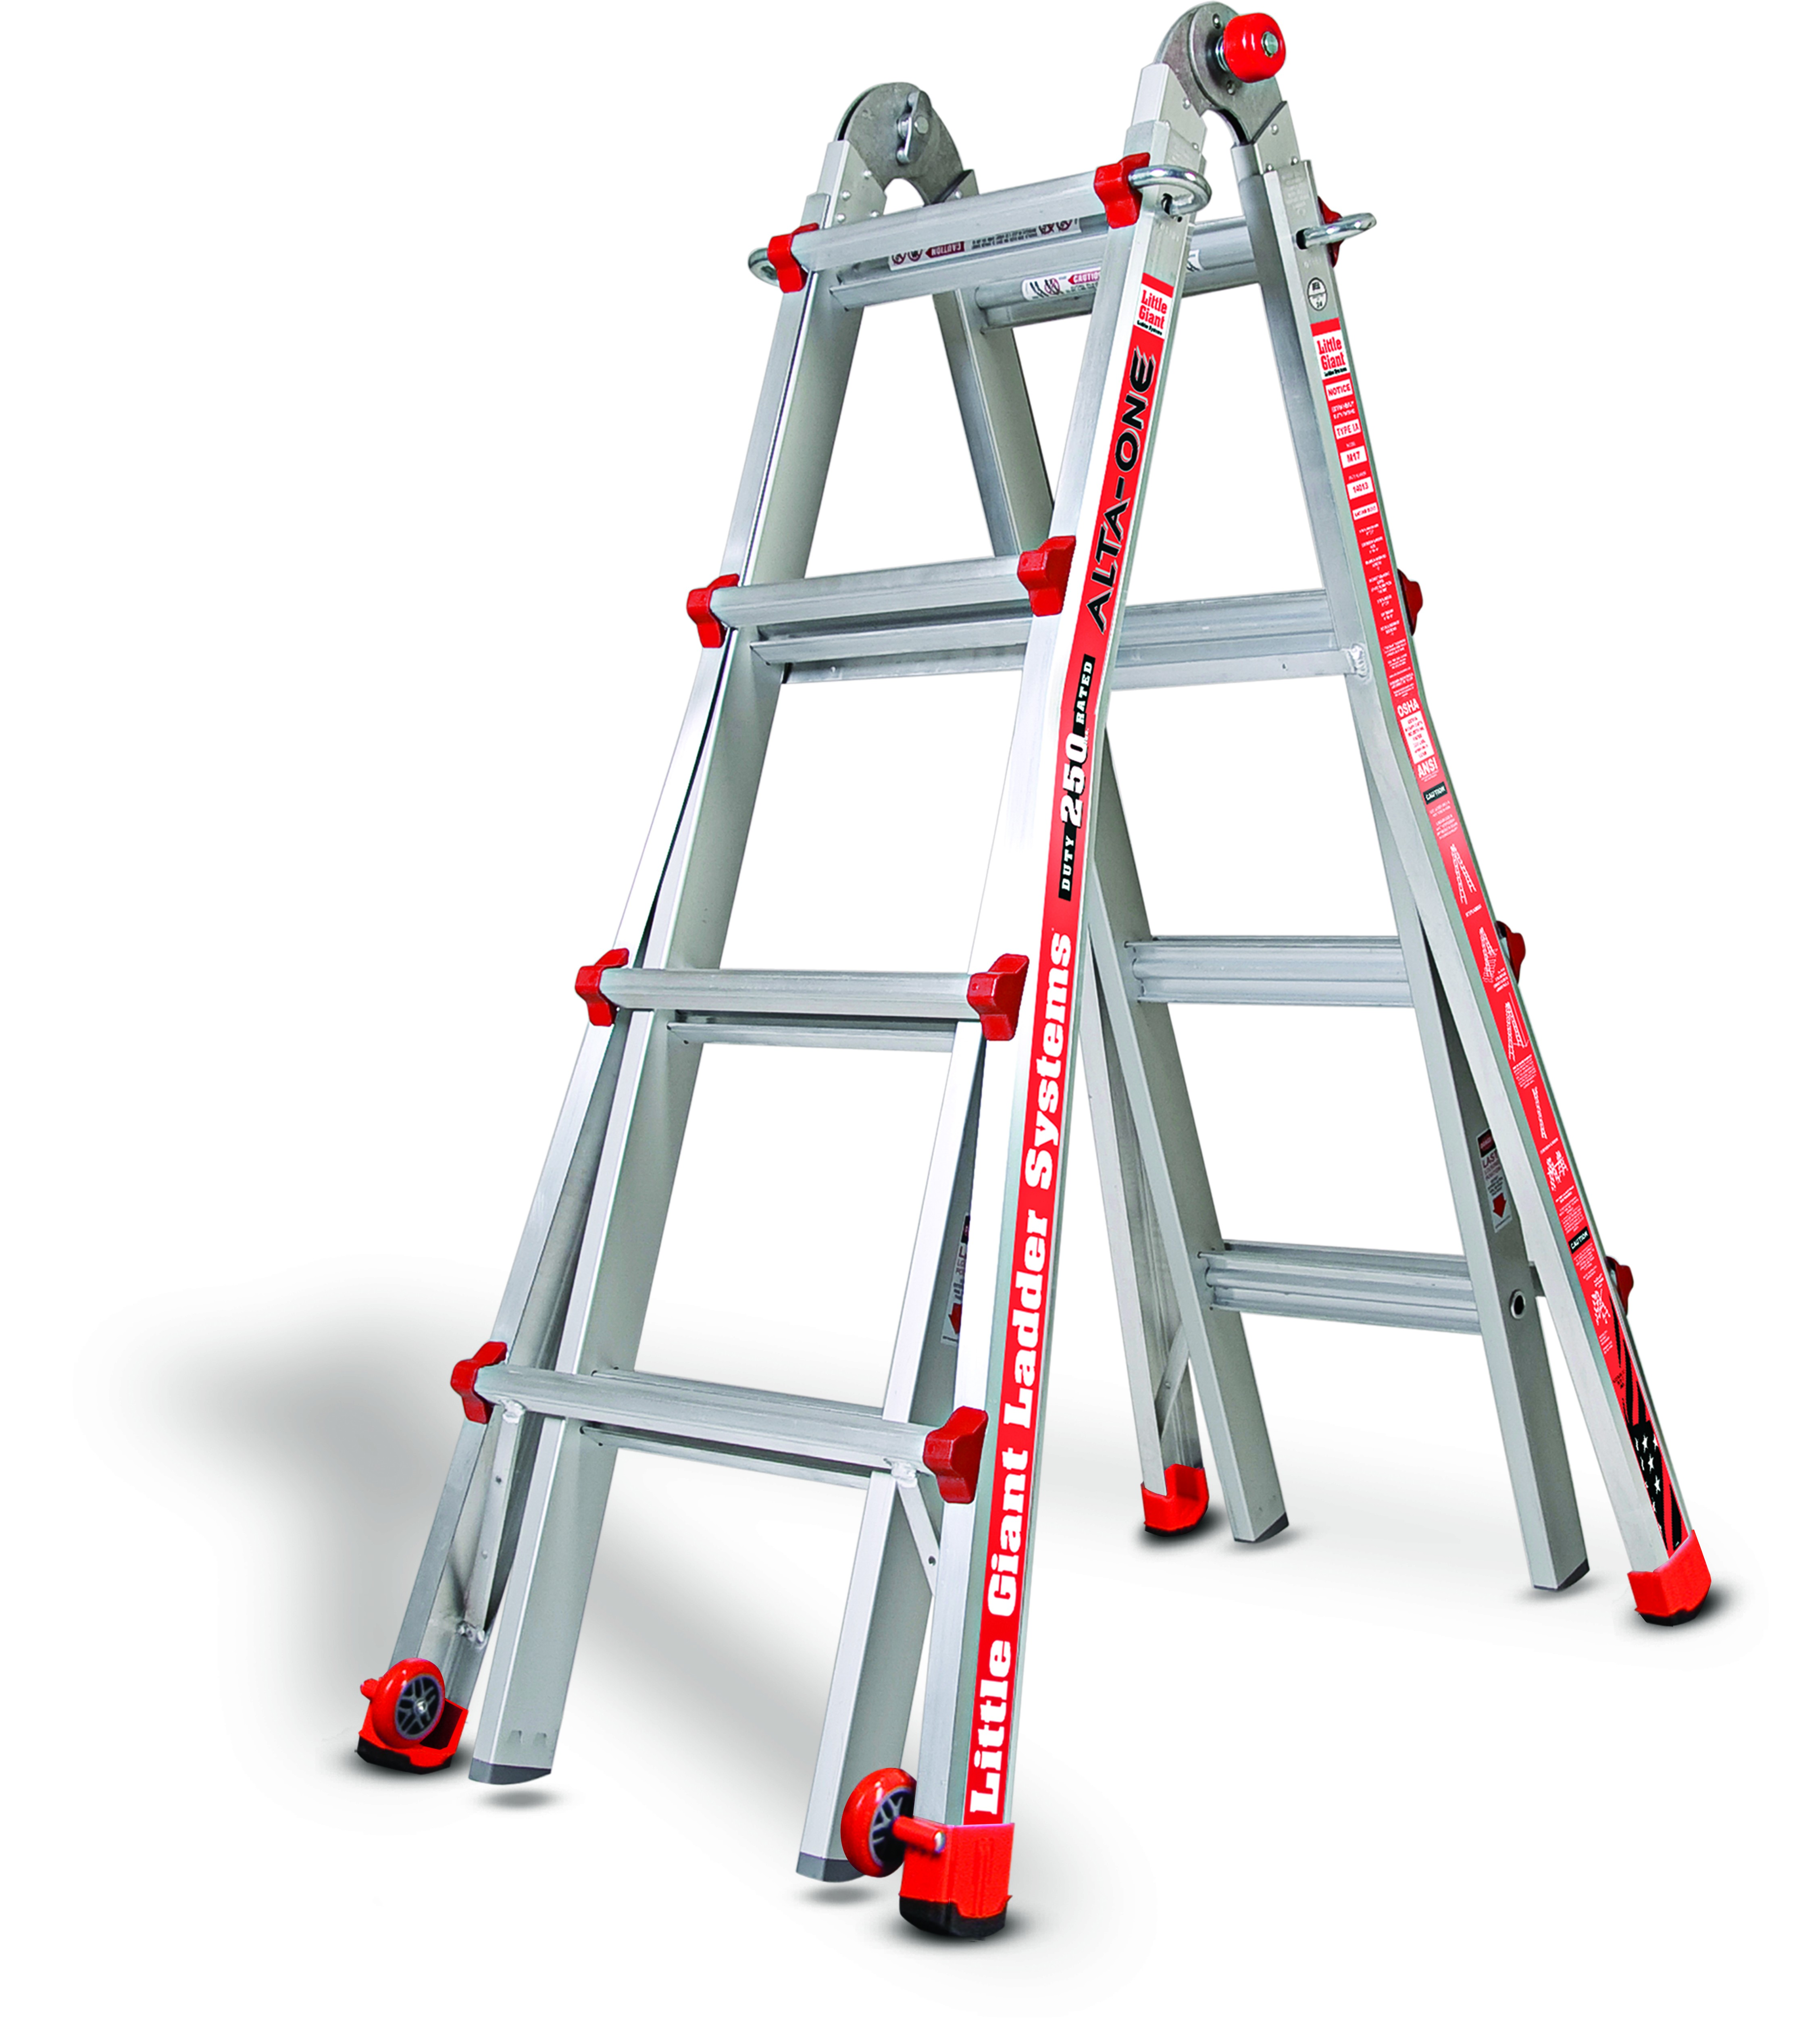 Stuccu: Best Deals on used little giant ladders. Up To 70% offFree Shipping · Special Discounts · Lowest Prices · Up to 70% off.